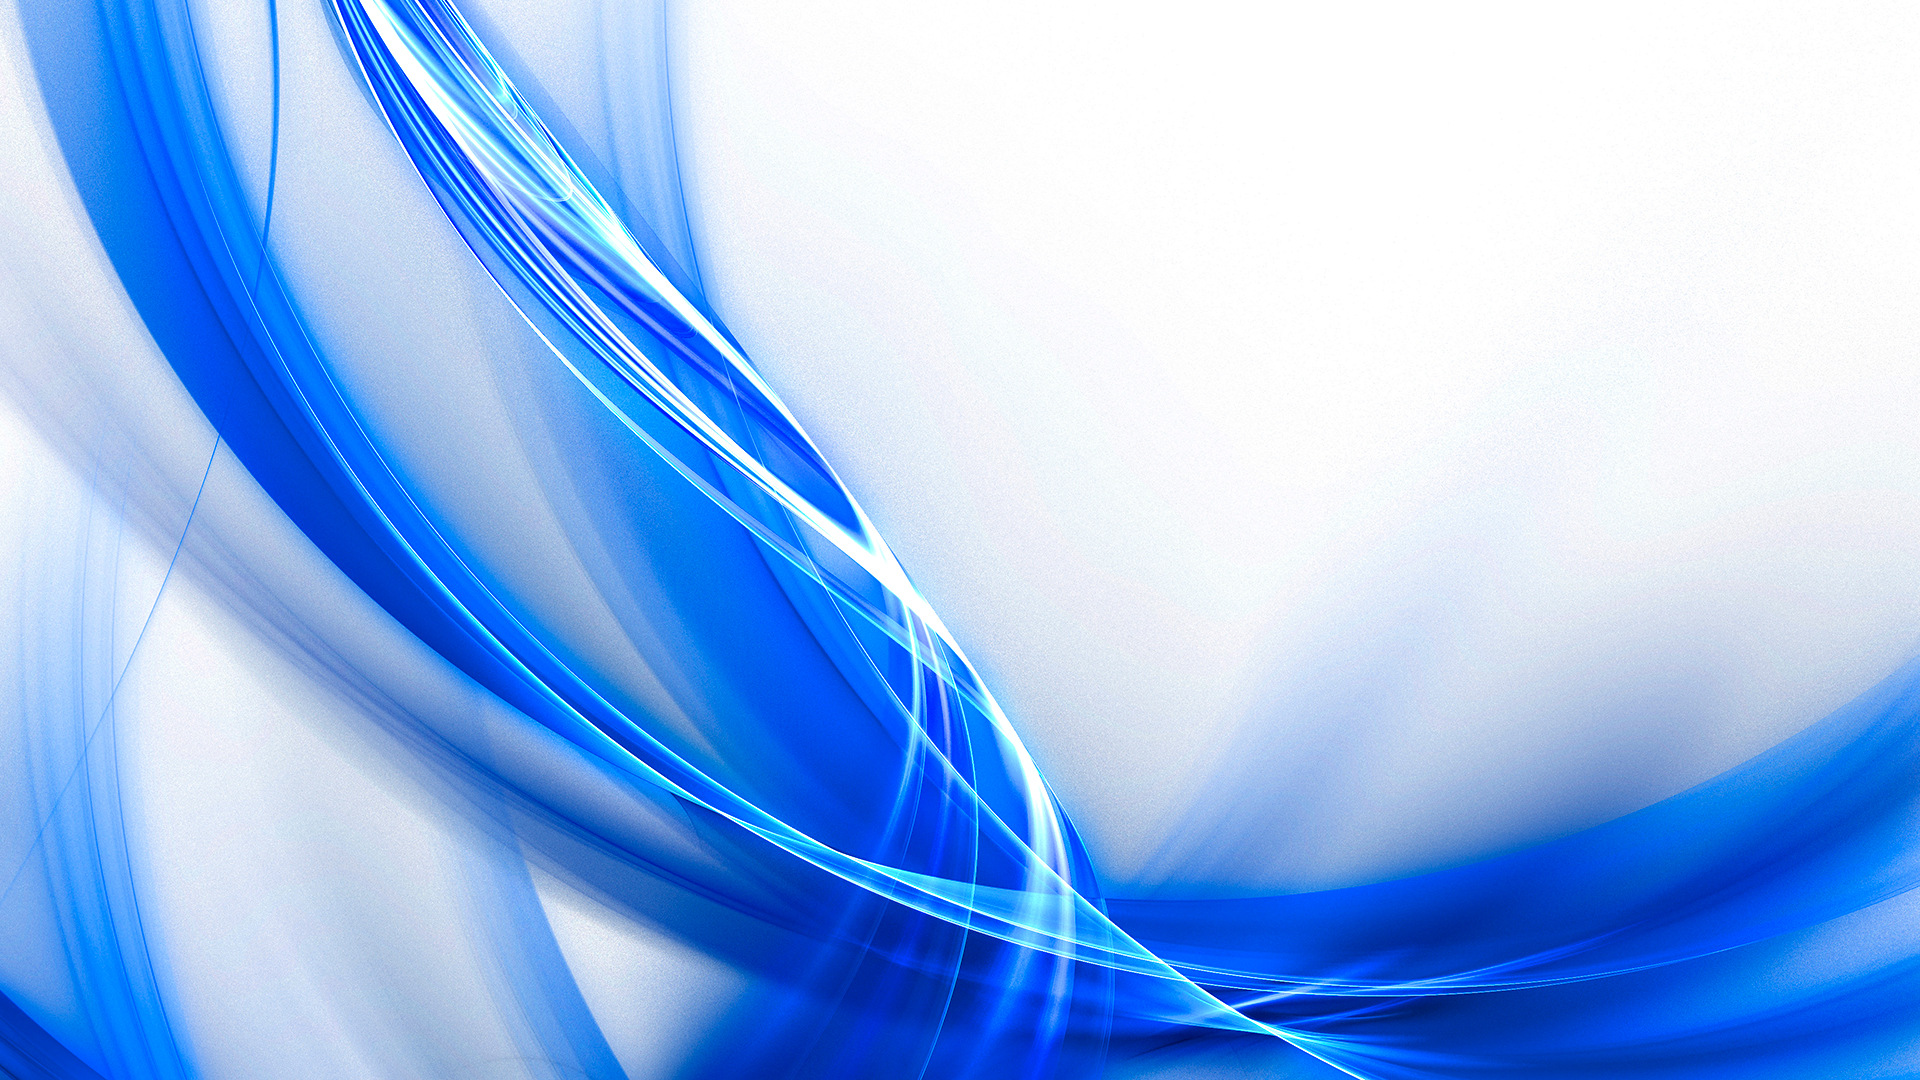 blue and white wallpaper 8899 1920x1080 px